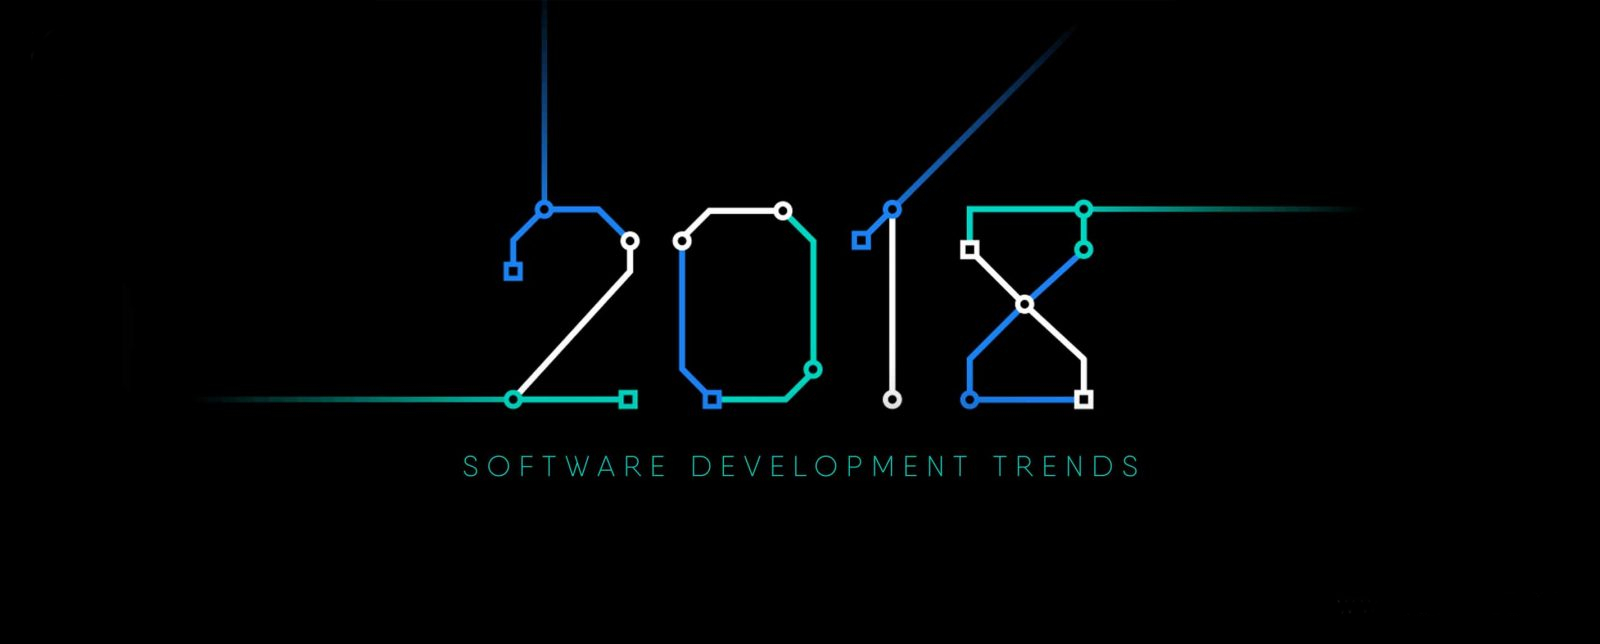 software-development-trends-2018